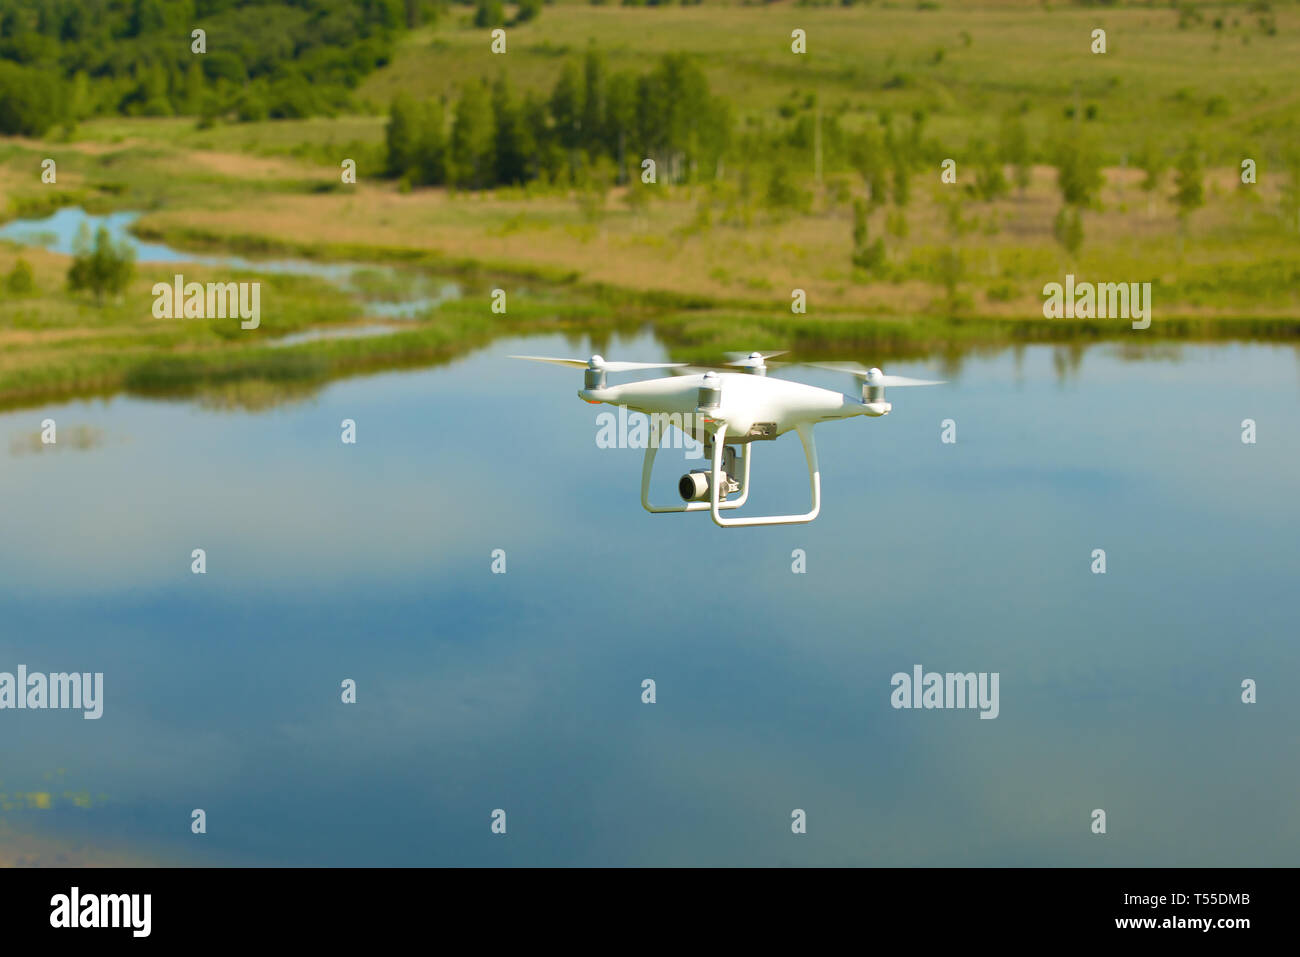 PSKOV REGION, RUSSIA - JUNE, 2018: Flying quadrocopter 'Phantom' on the background of the summer lake - Stock Image